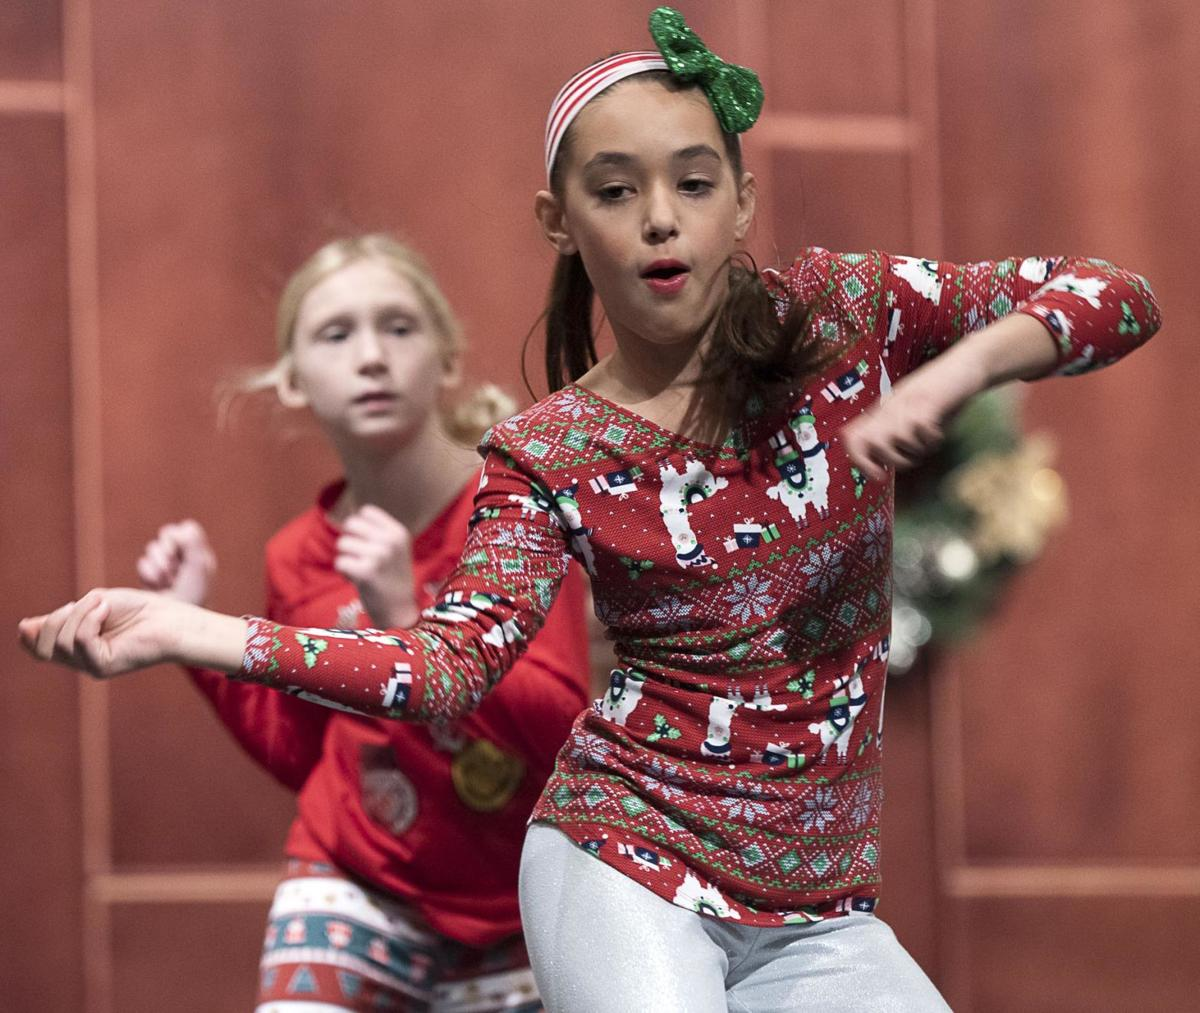 Kids put on their holiday dancing shoes during Christmas program